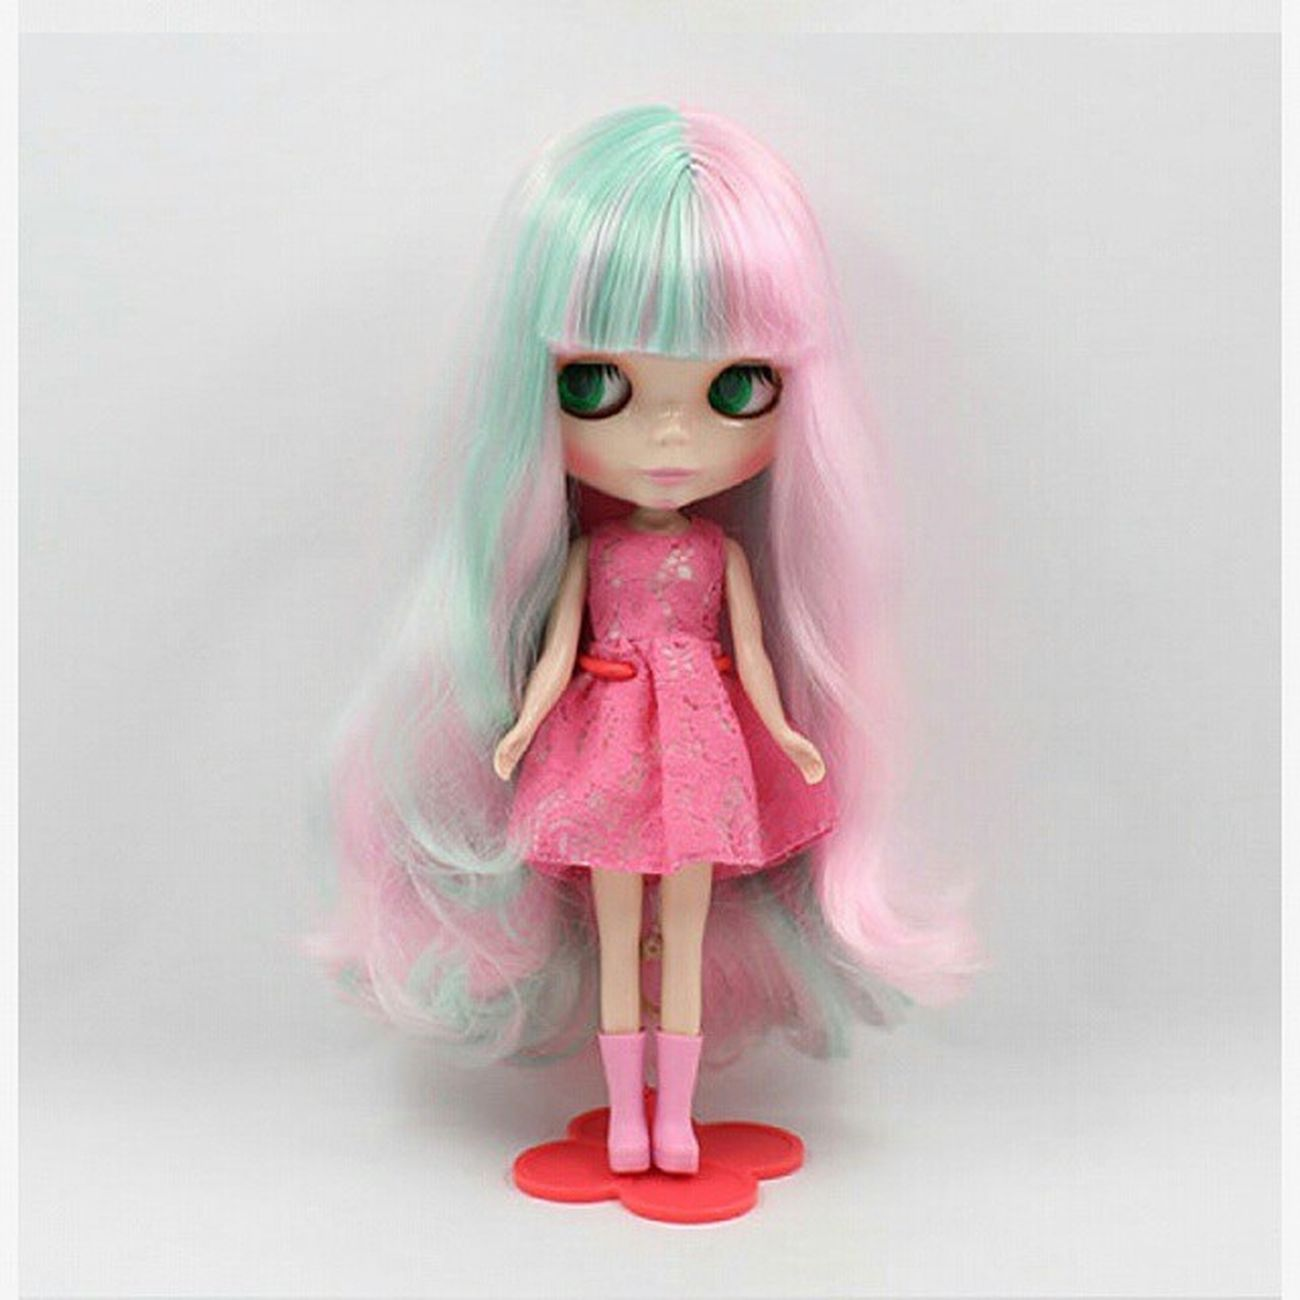 Wanna take her home!!! Saving money~~~ Takarablythe Blythe Blythedoll Doll